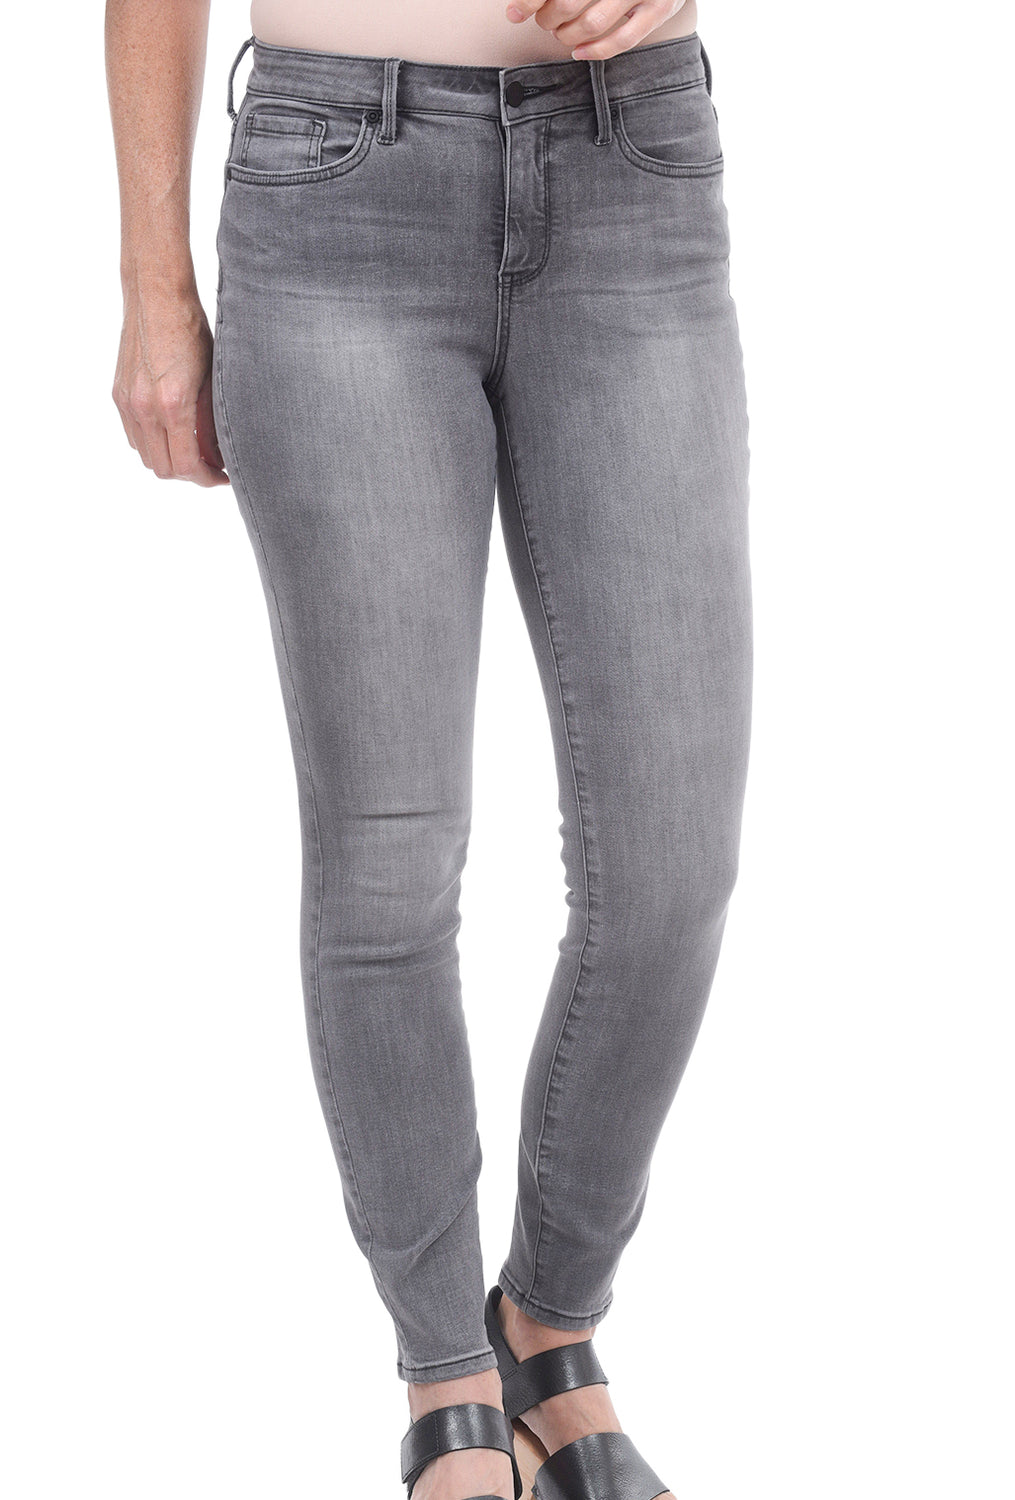 NYDJ Ami Skinny Washed Denim, Tullie Gray